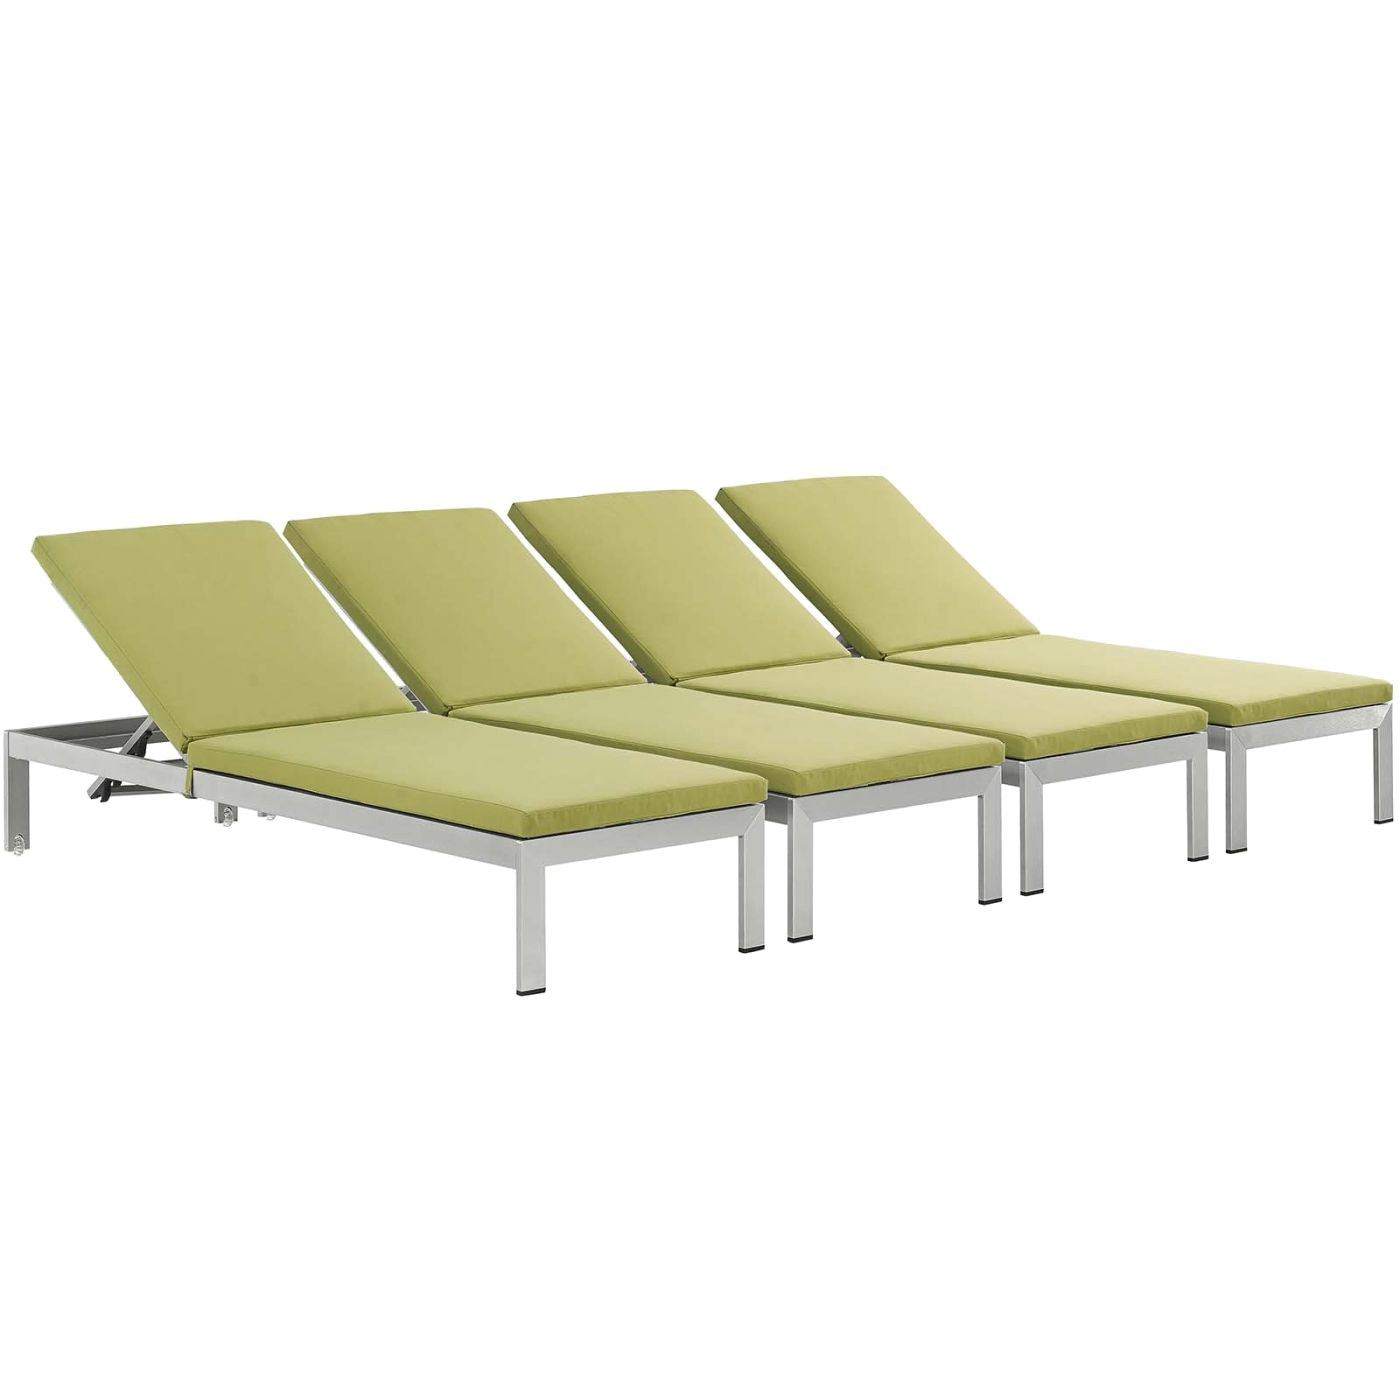 Modway shore chaise with cushions outdoor patio aluminum for Chaise aluminium